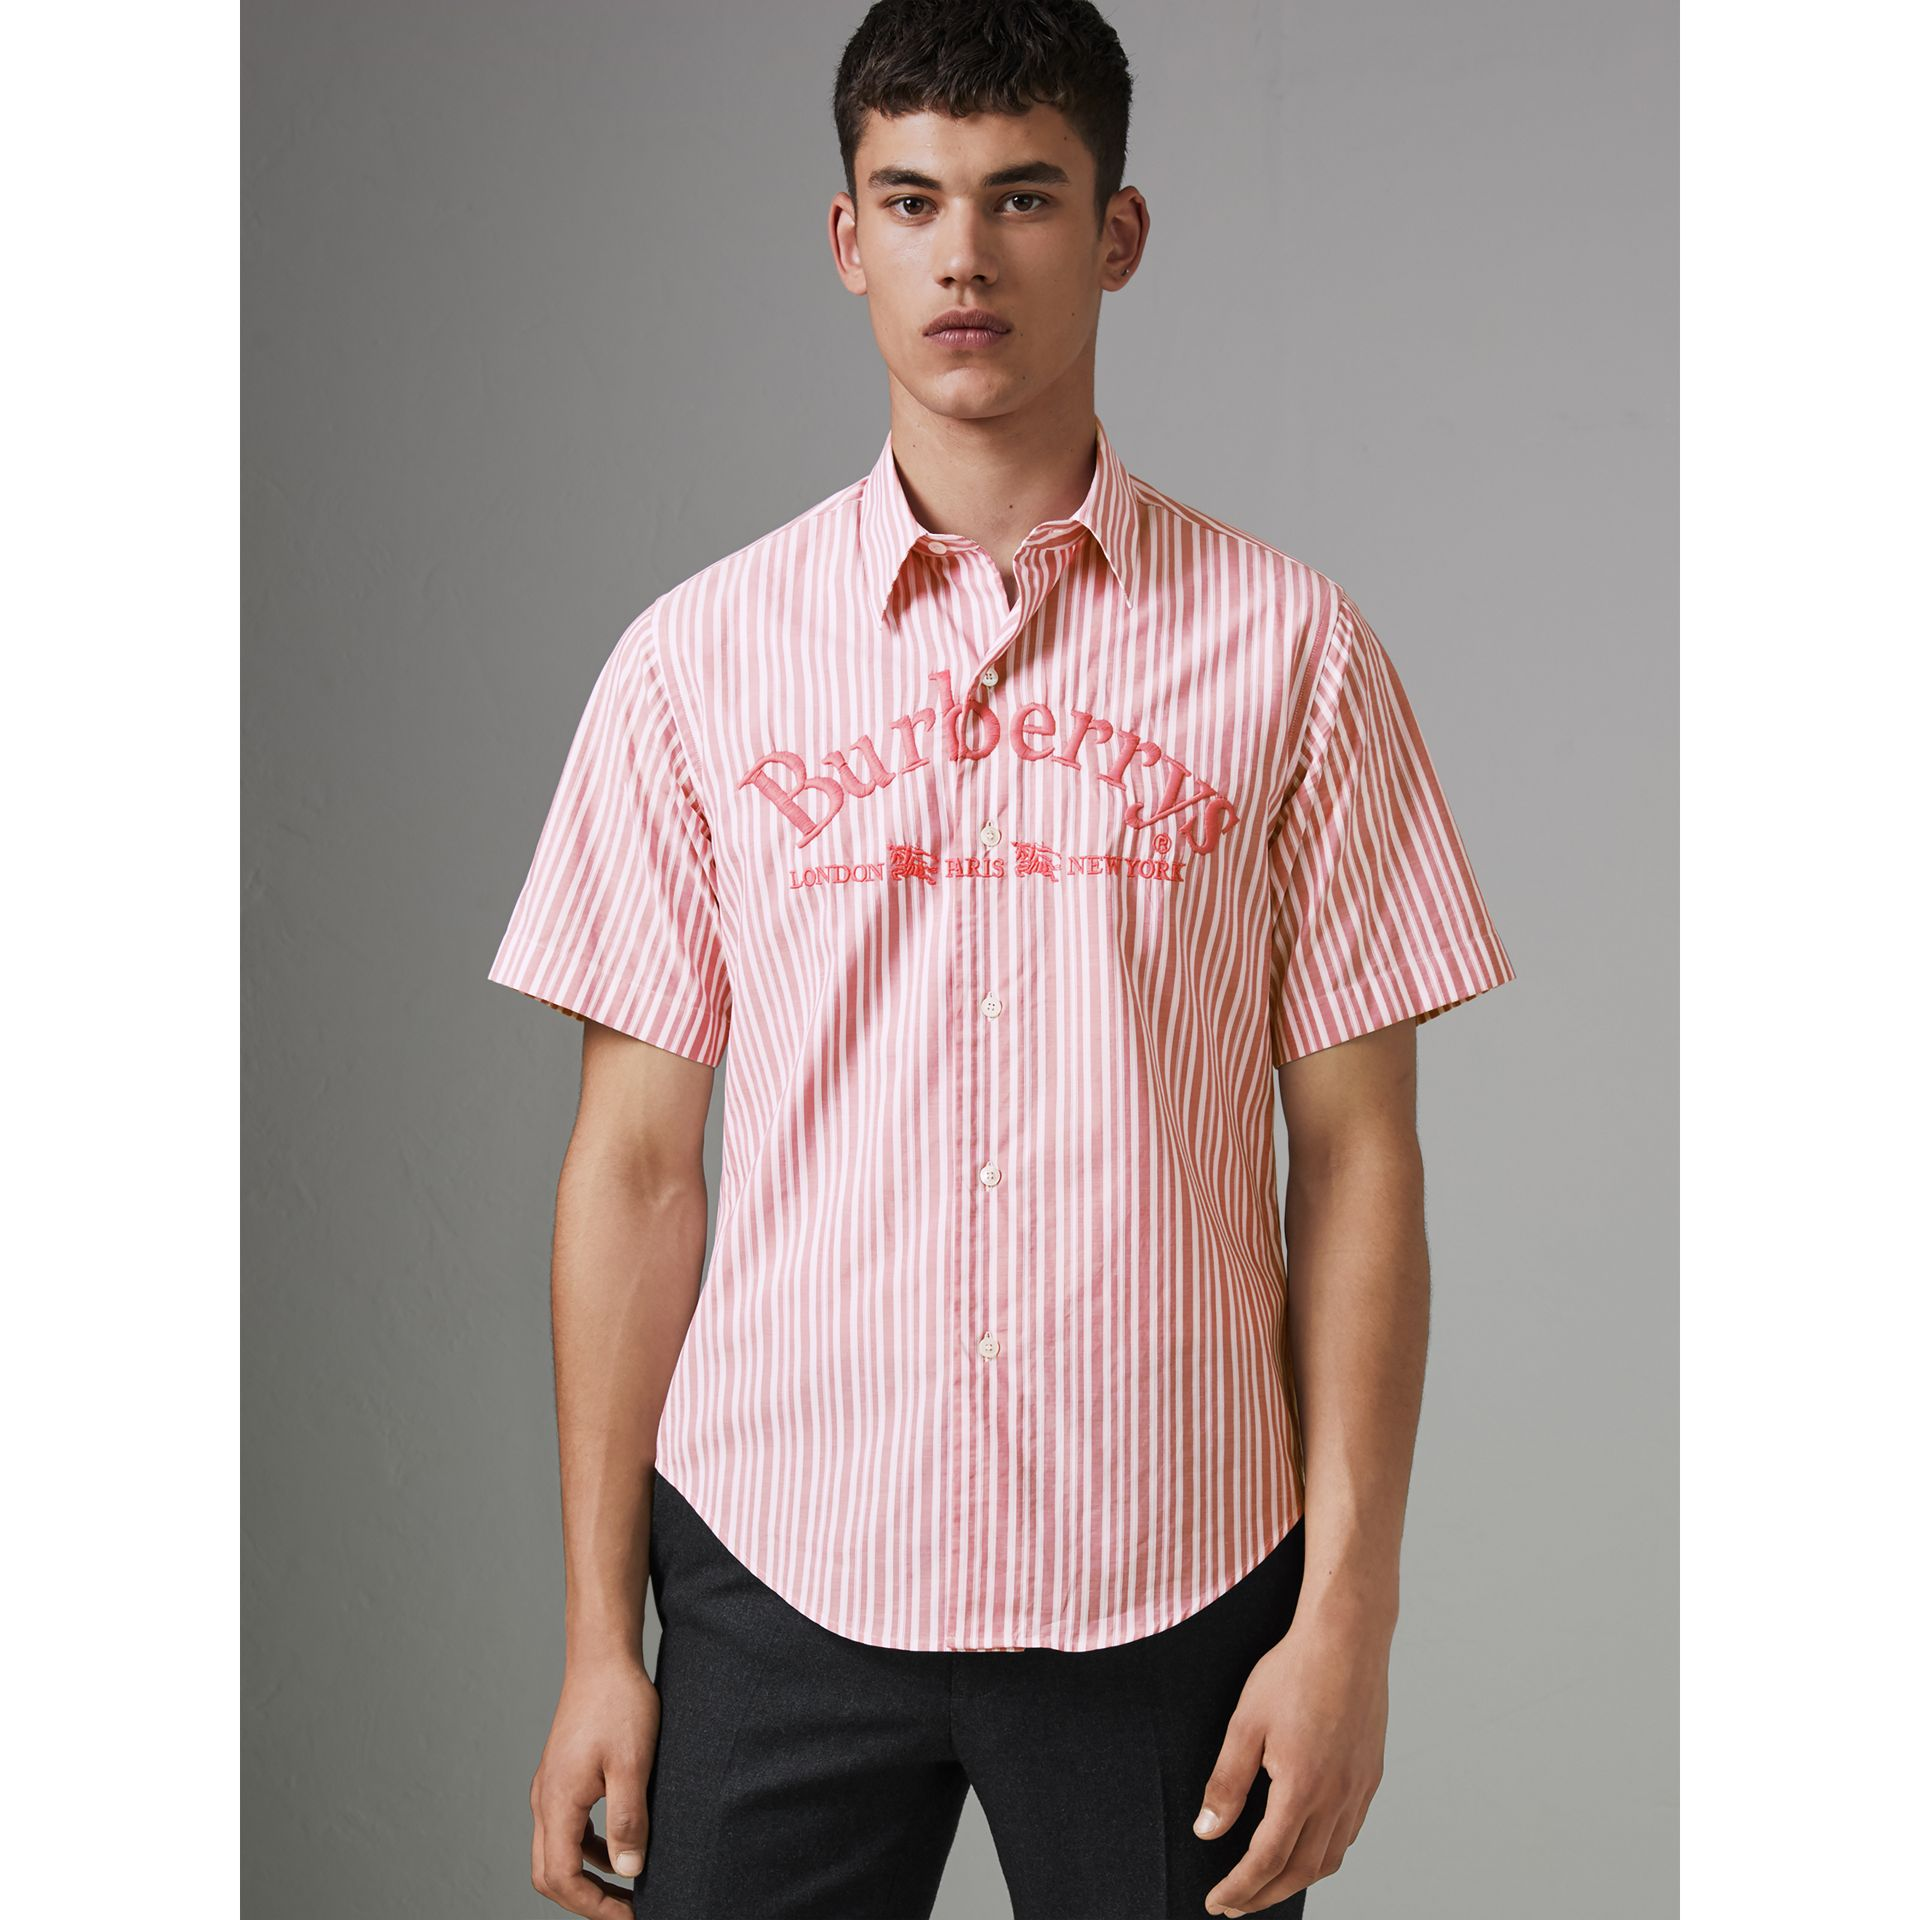 Embroidered Archive Logo Striped Short-sleeve Shirt in Light Pink - Men | Burberry Australia - gallery image 4